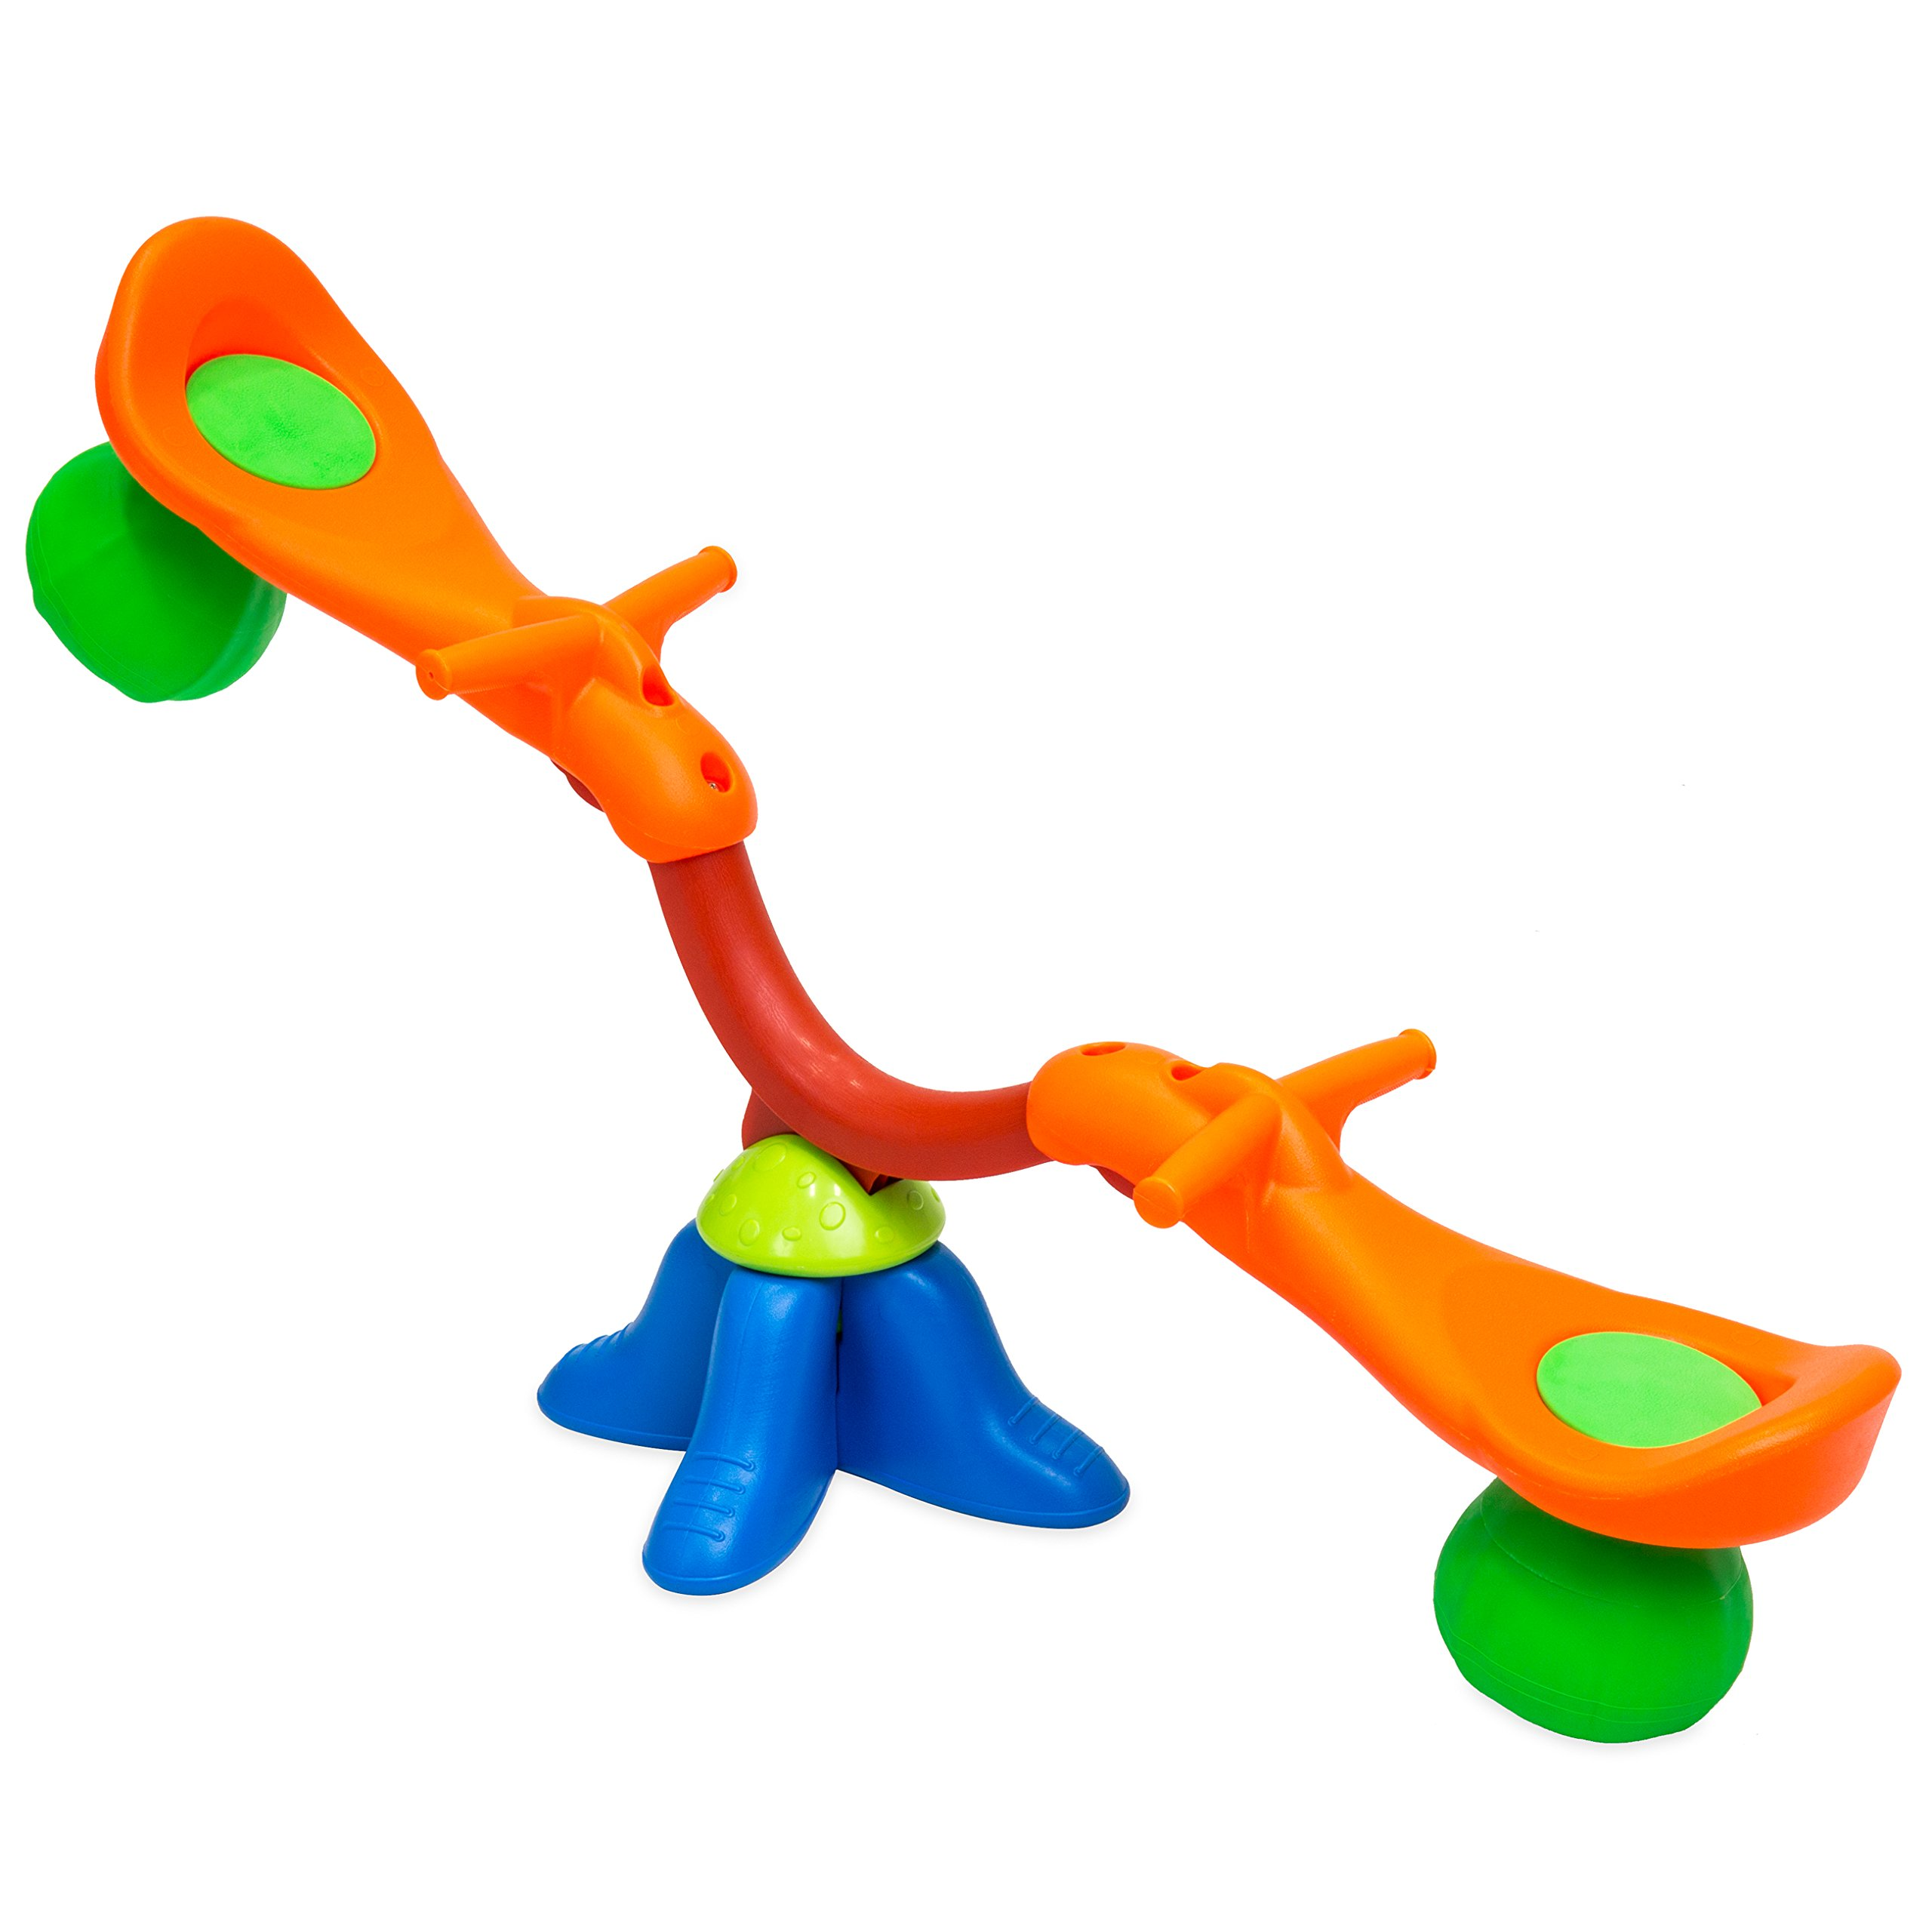 Best Choice Products Kids Toddler 360 Degree Swivel Seesaw Bouncer Teeter Totter (Multicolor) by Best Choice Products